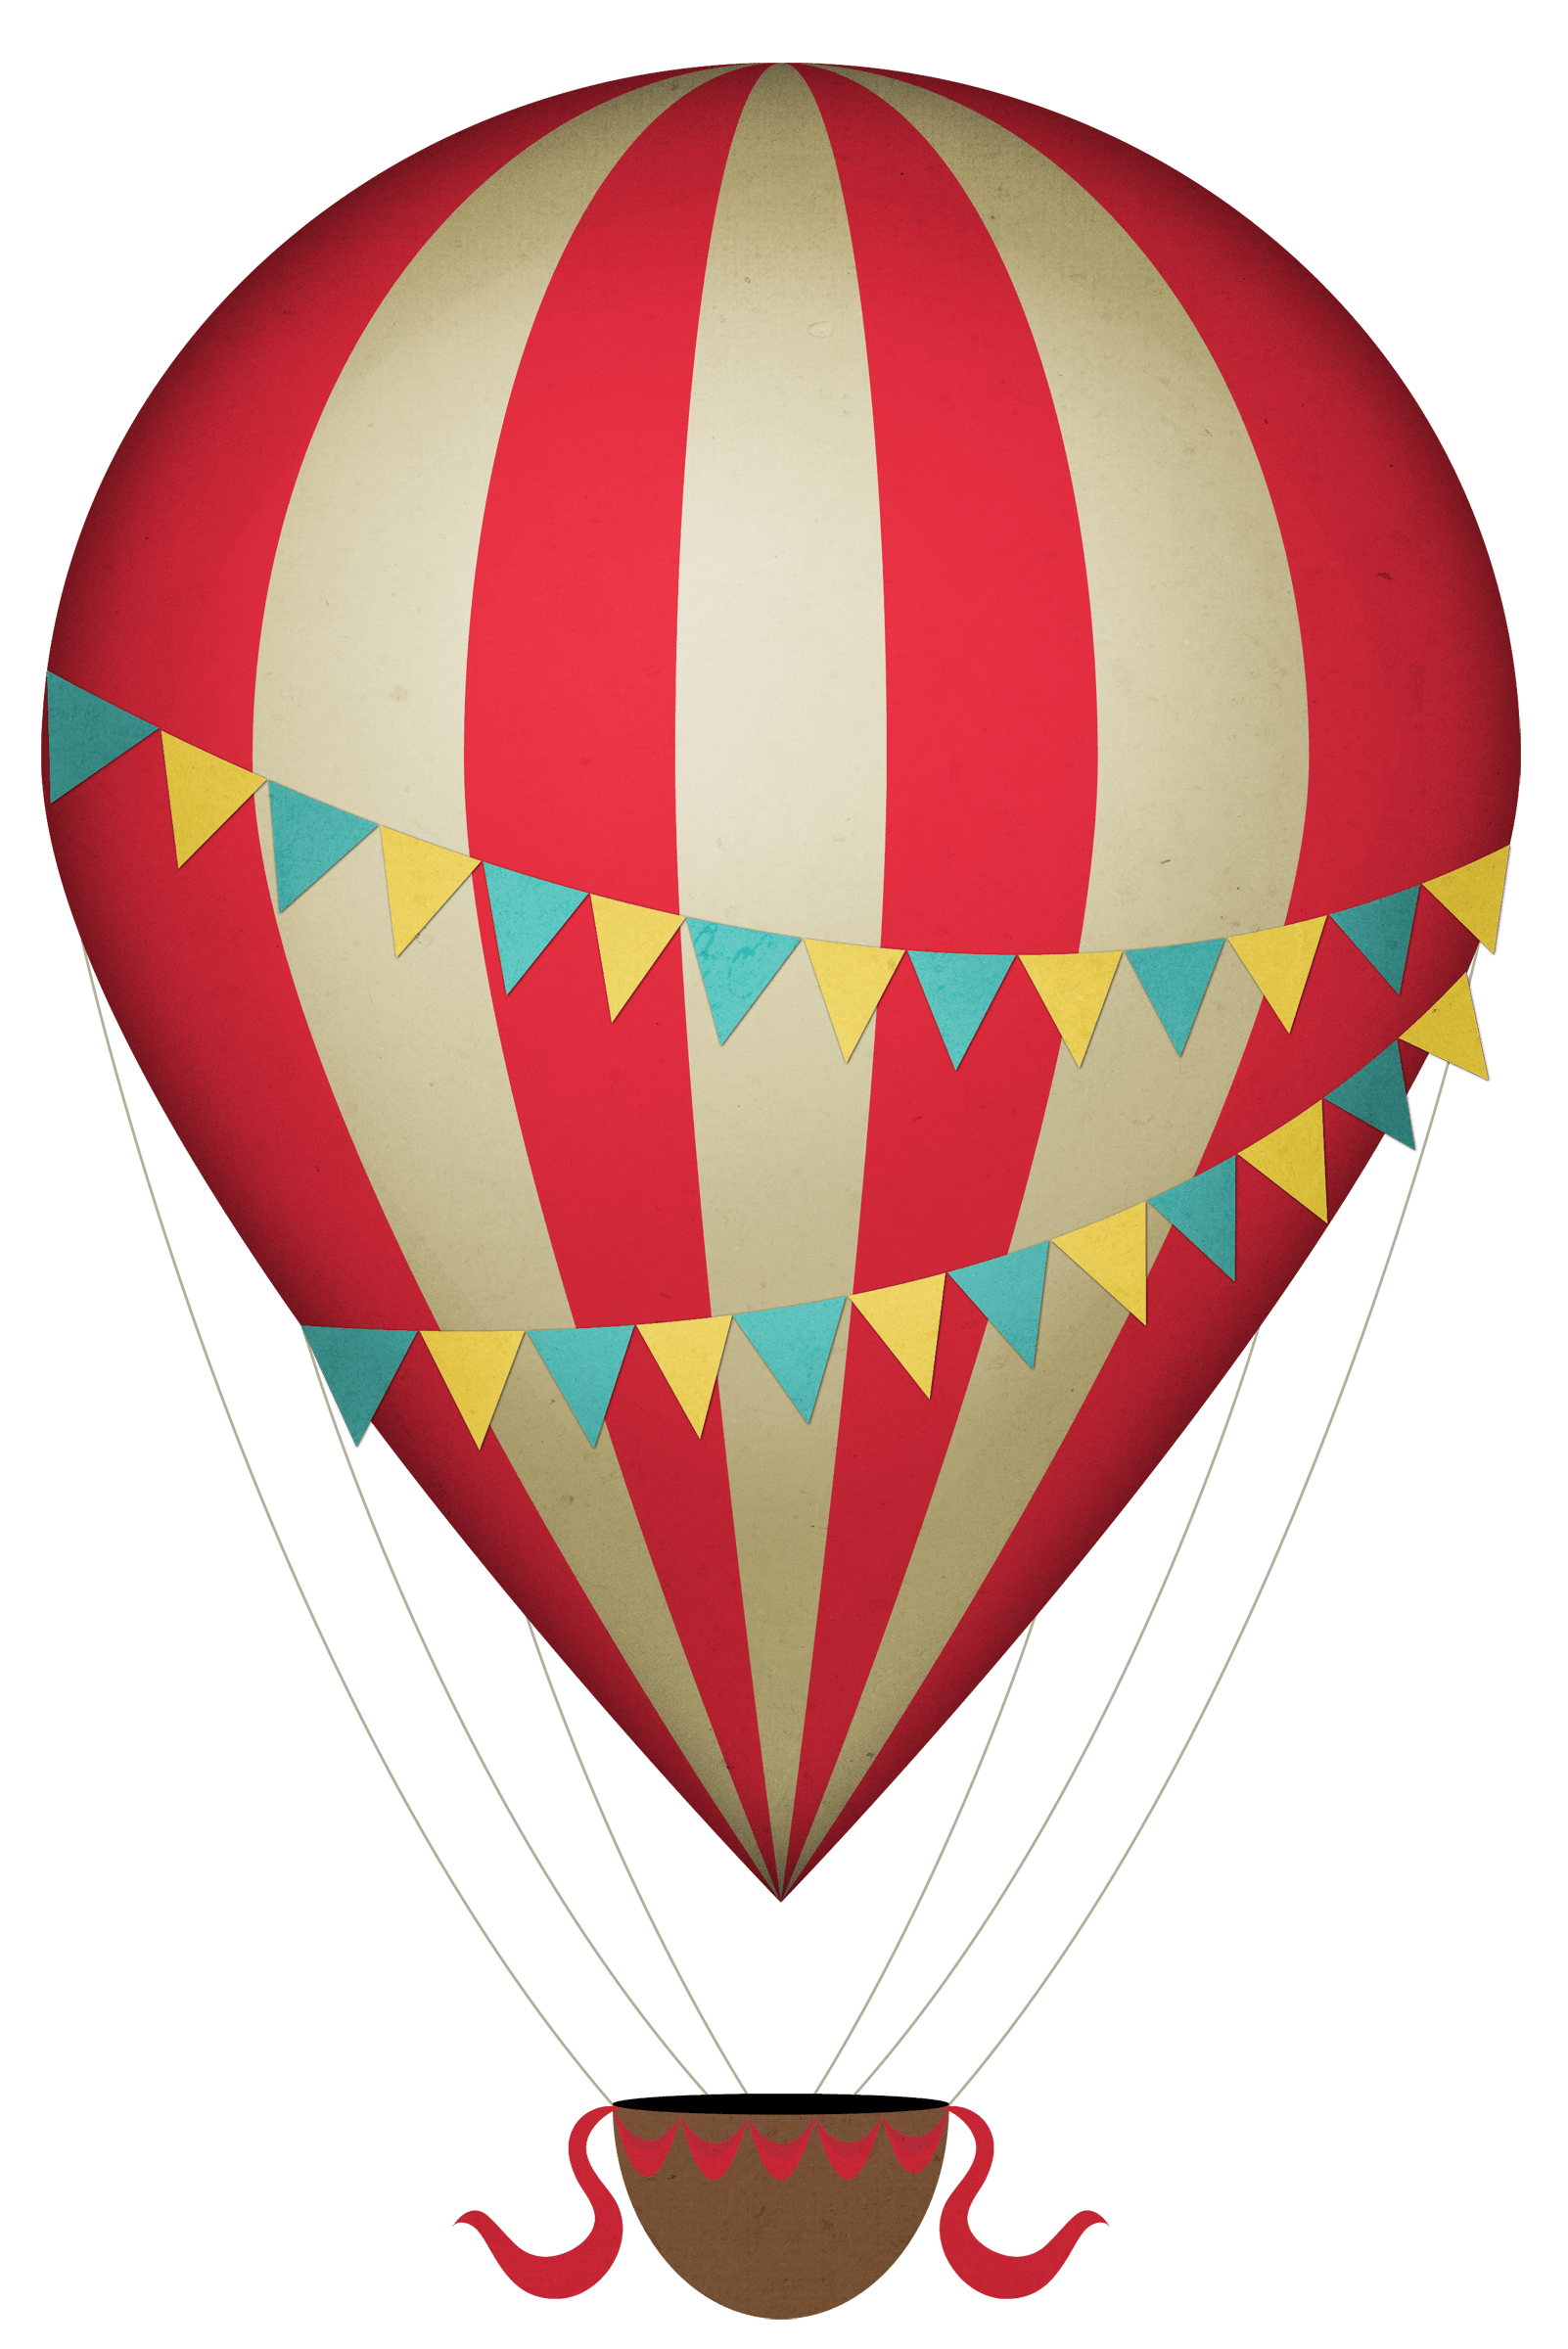 Clipart hot air balloons jpg download Vintage Clipart Hot Air Balloon transparent PNG - StickPNG jpg download